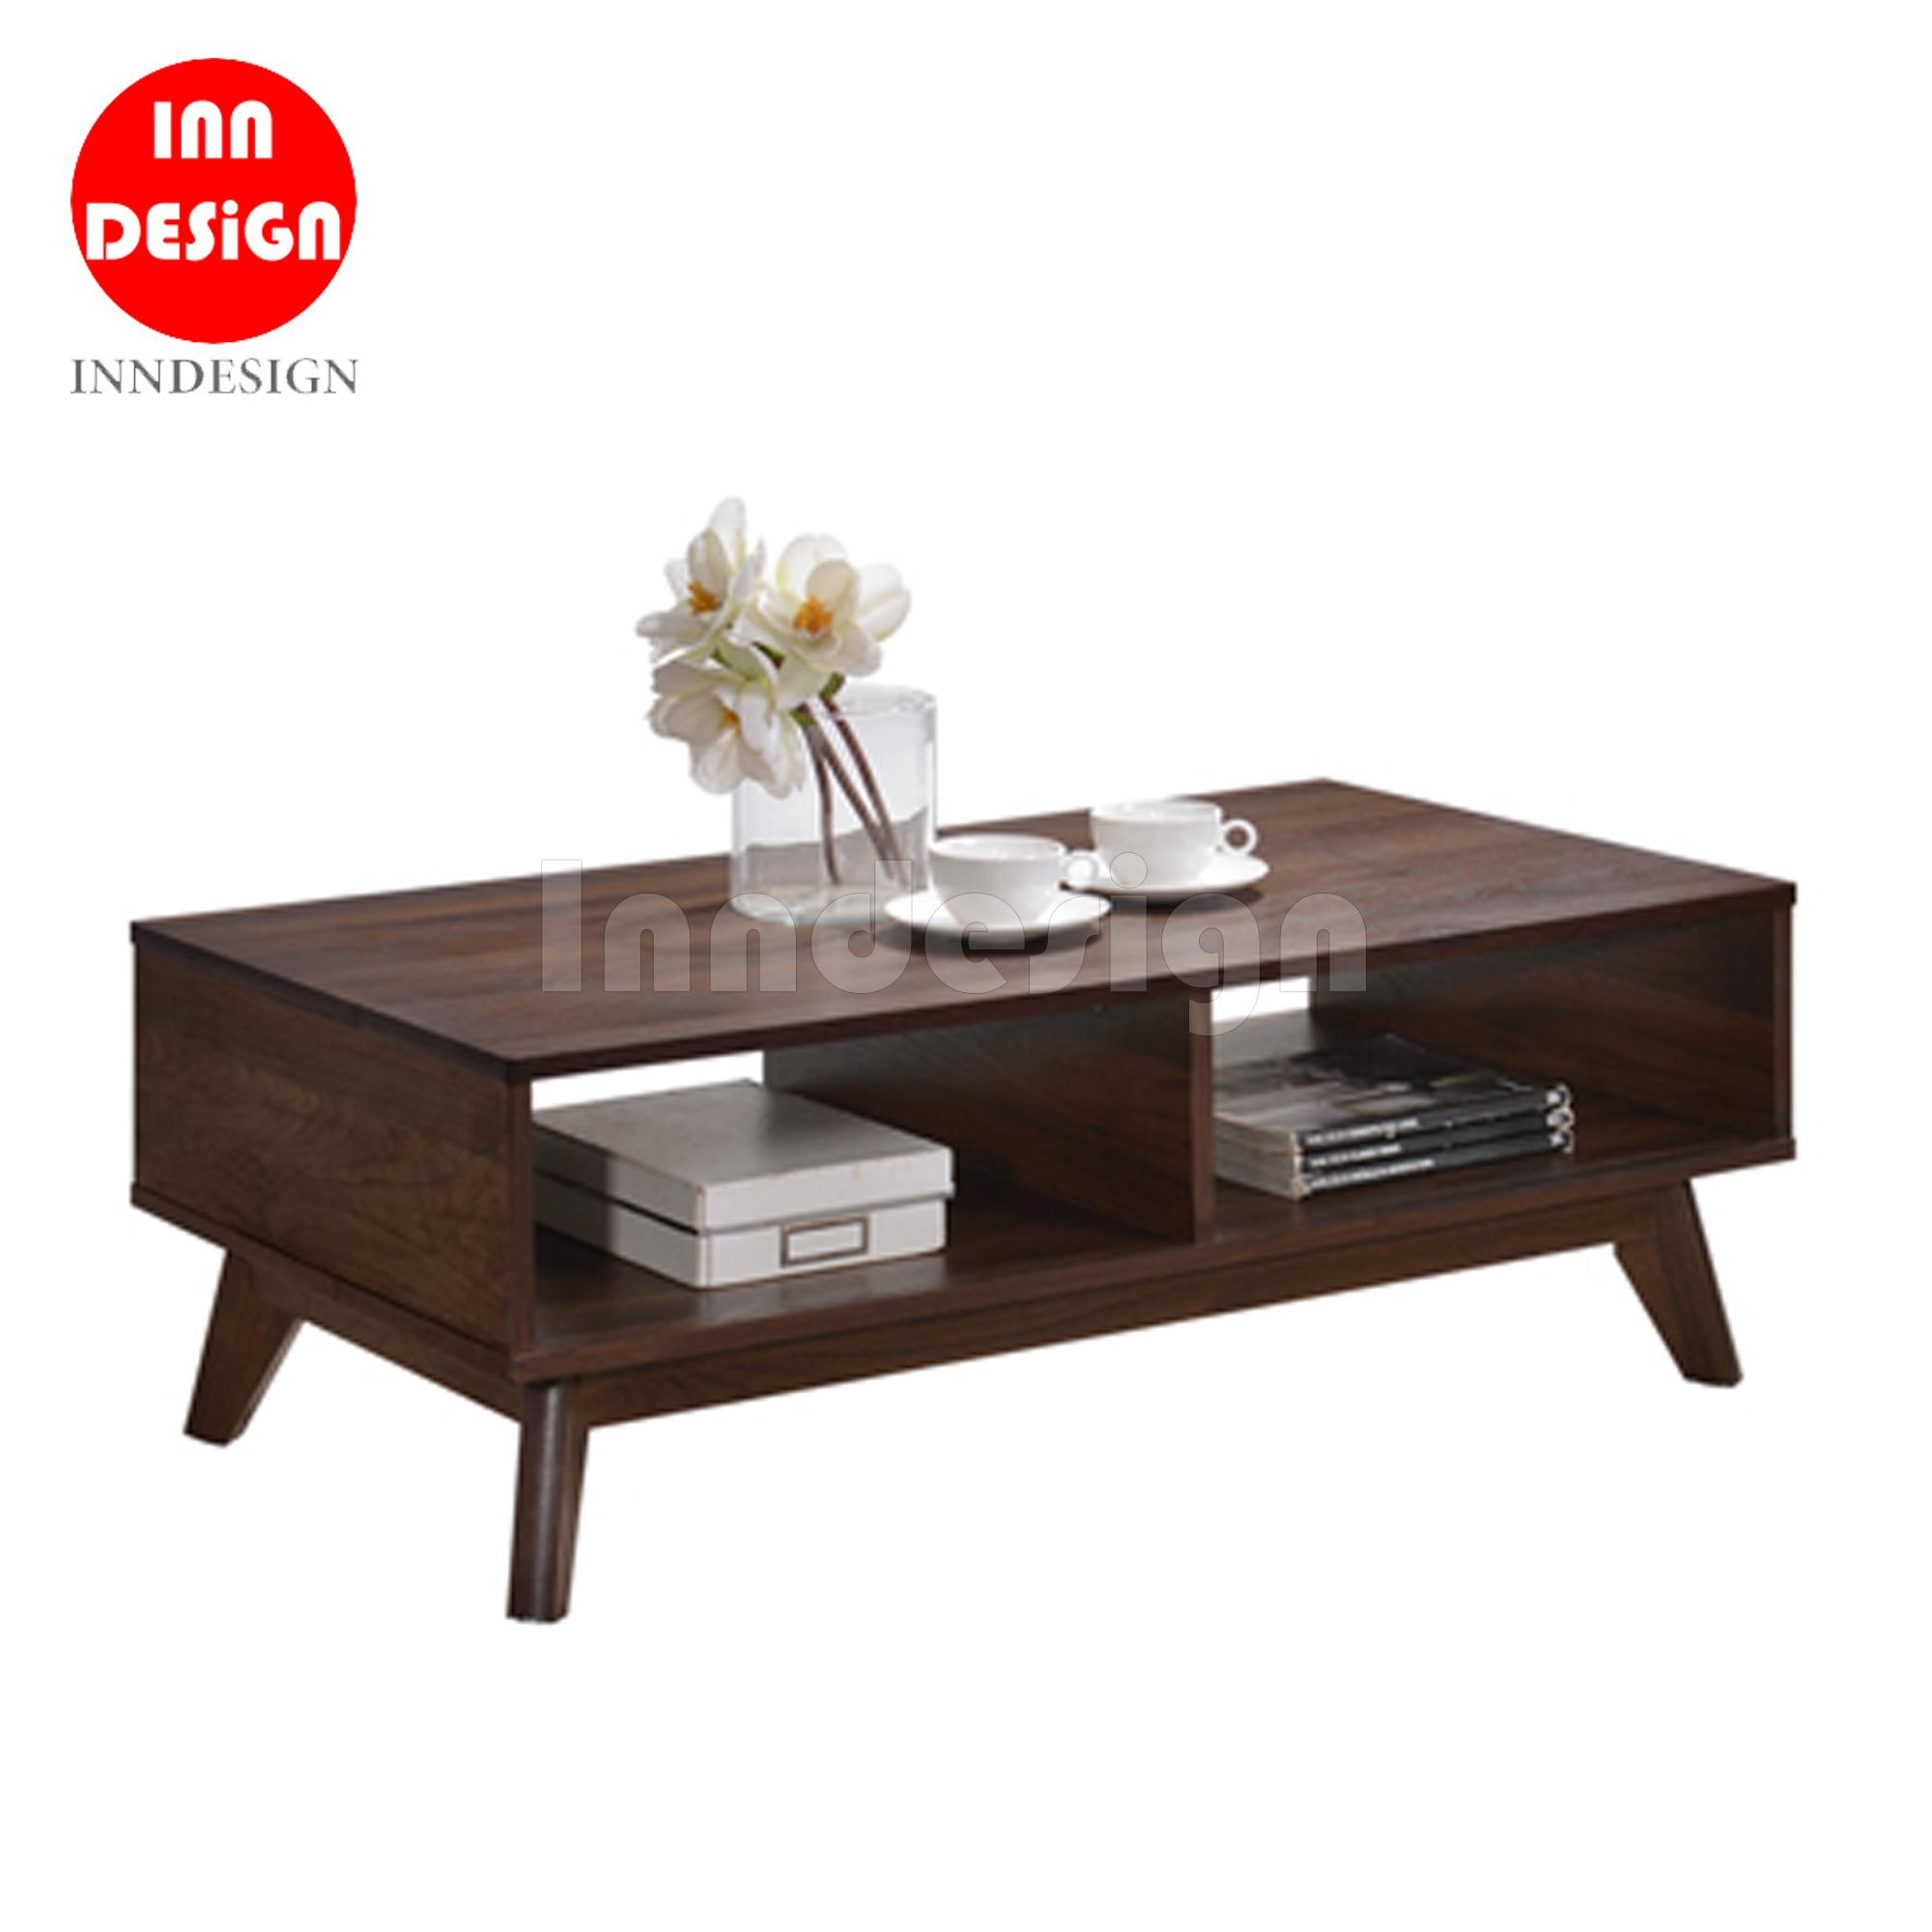 Reno Coffee Table